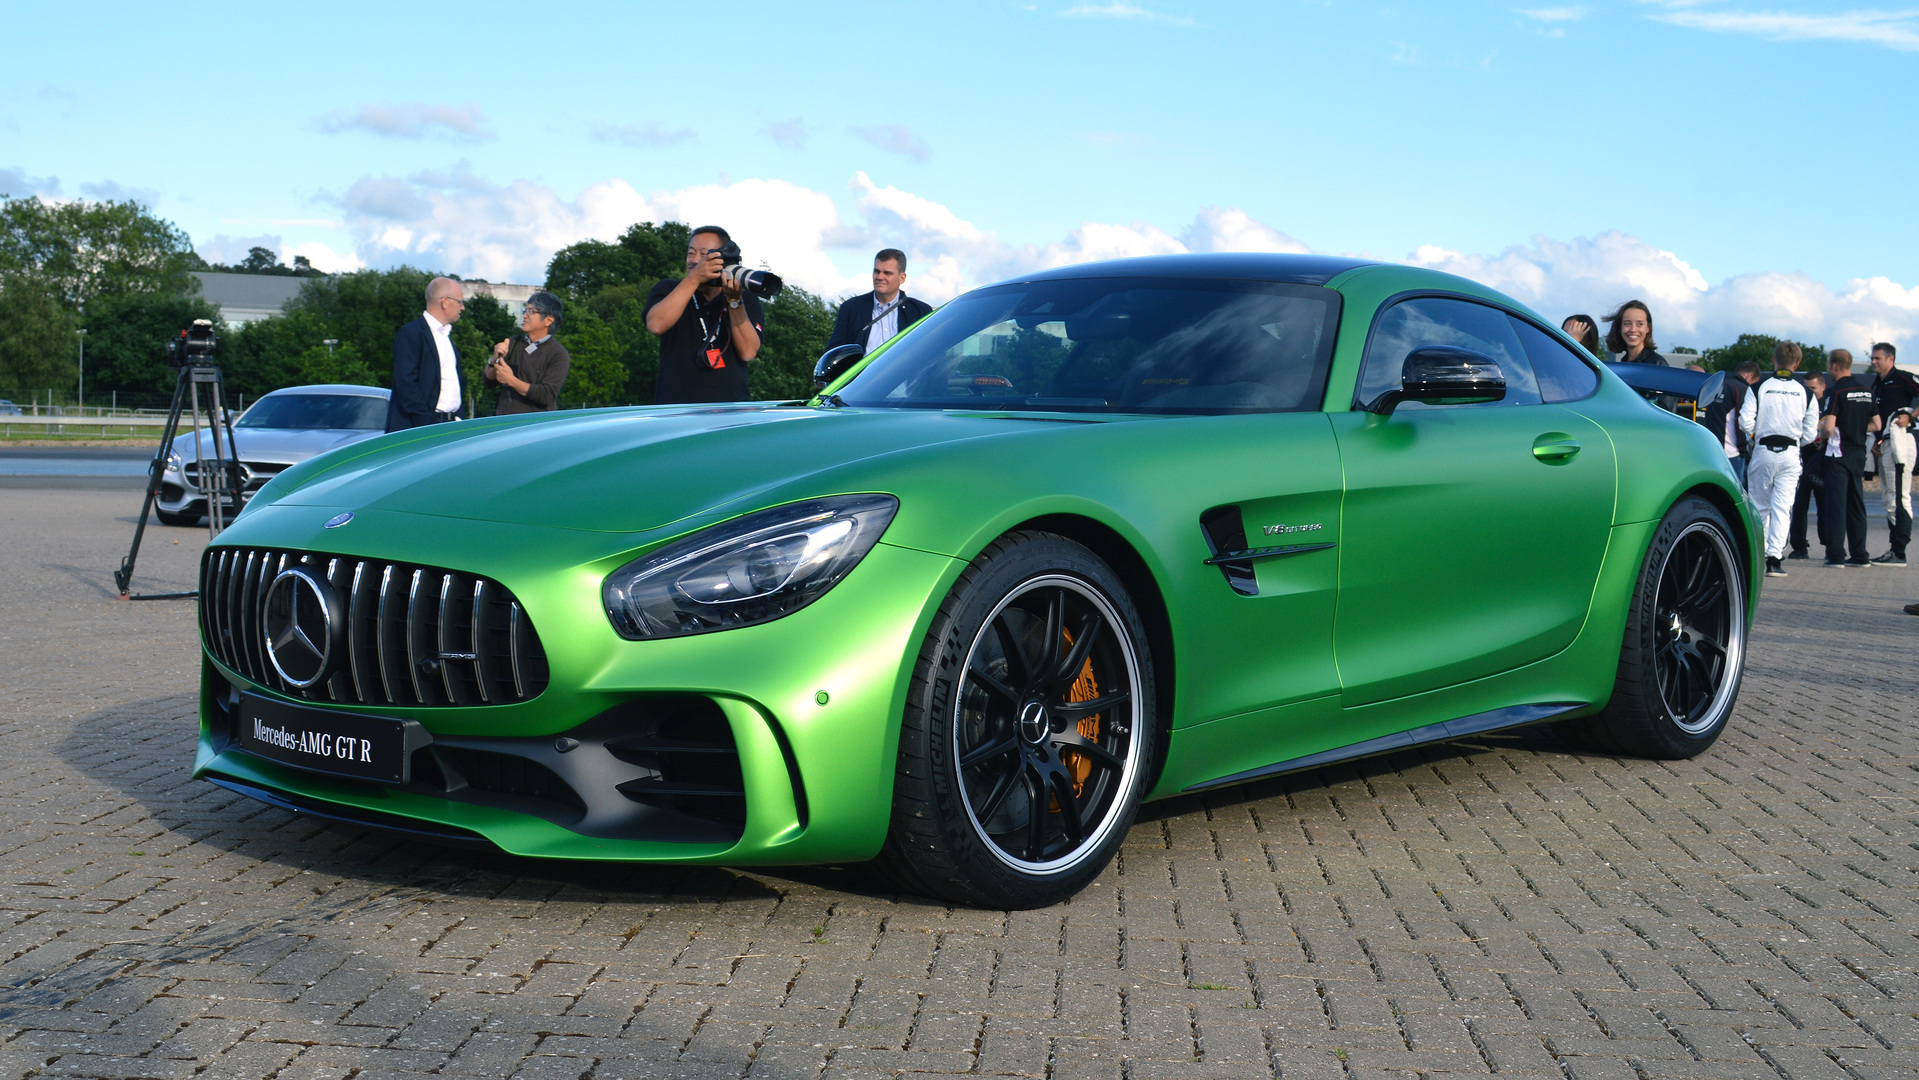 lewis hamilton helps launch mercedes amg gt r plus new variants coming. Black Bedroom Furniture Sets. Home Design Ideas